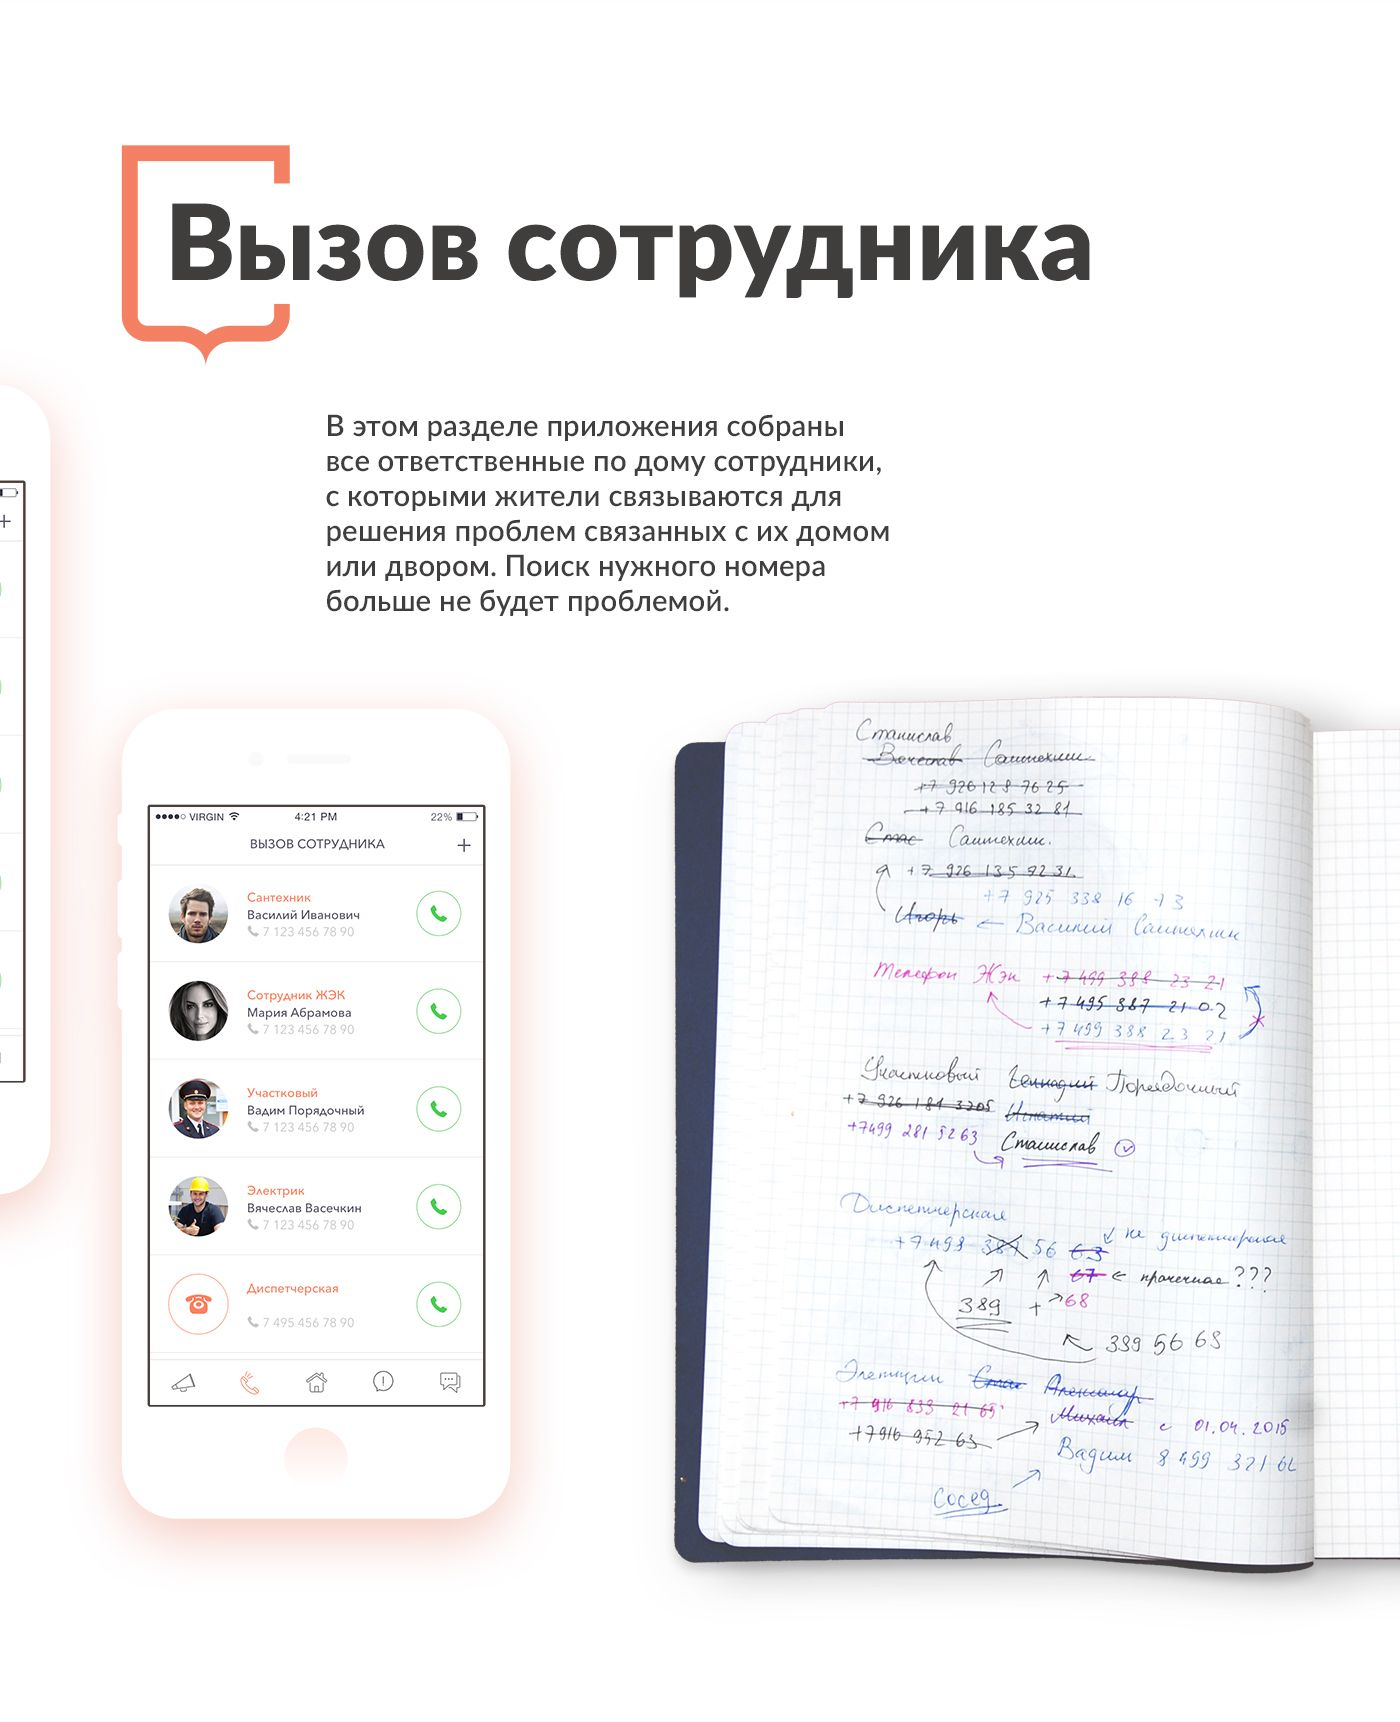 Neighbors - iOS app for micro communities of Moscow on Behance